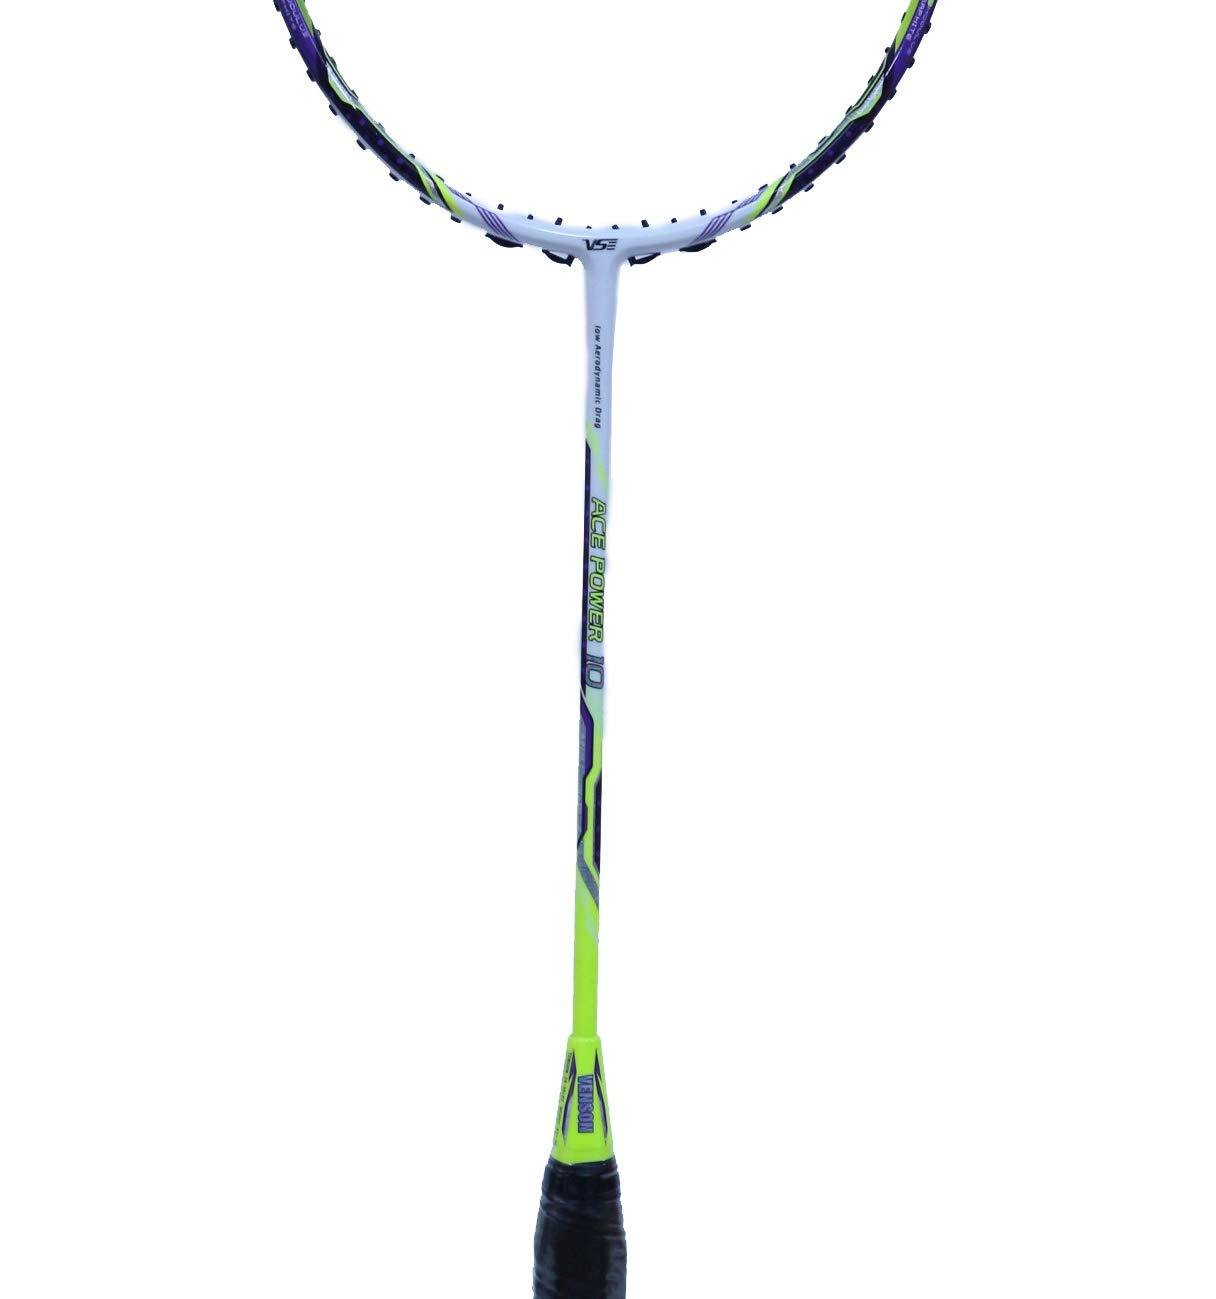 The new Ace Power 10 lightweight badminton racket allows for straightforward handling while maintaining the Ace Power series.